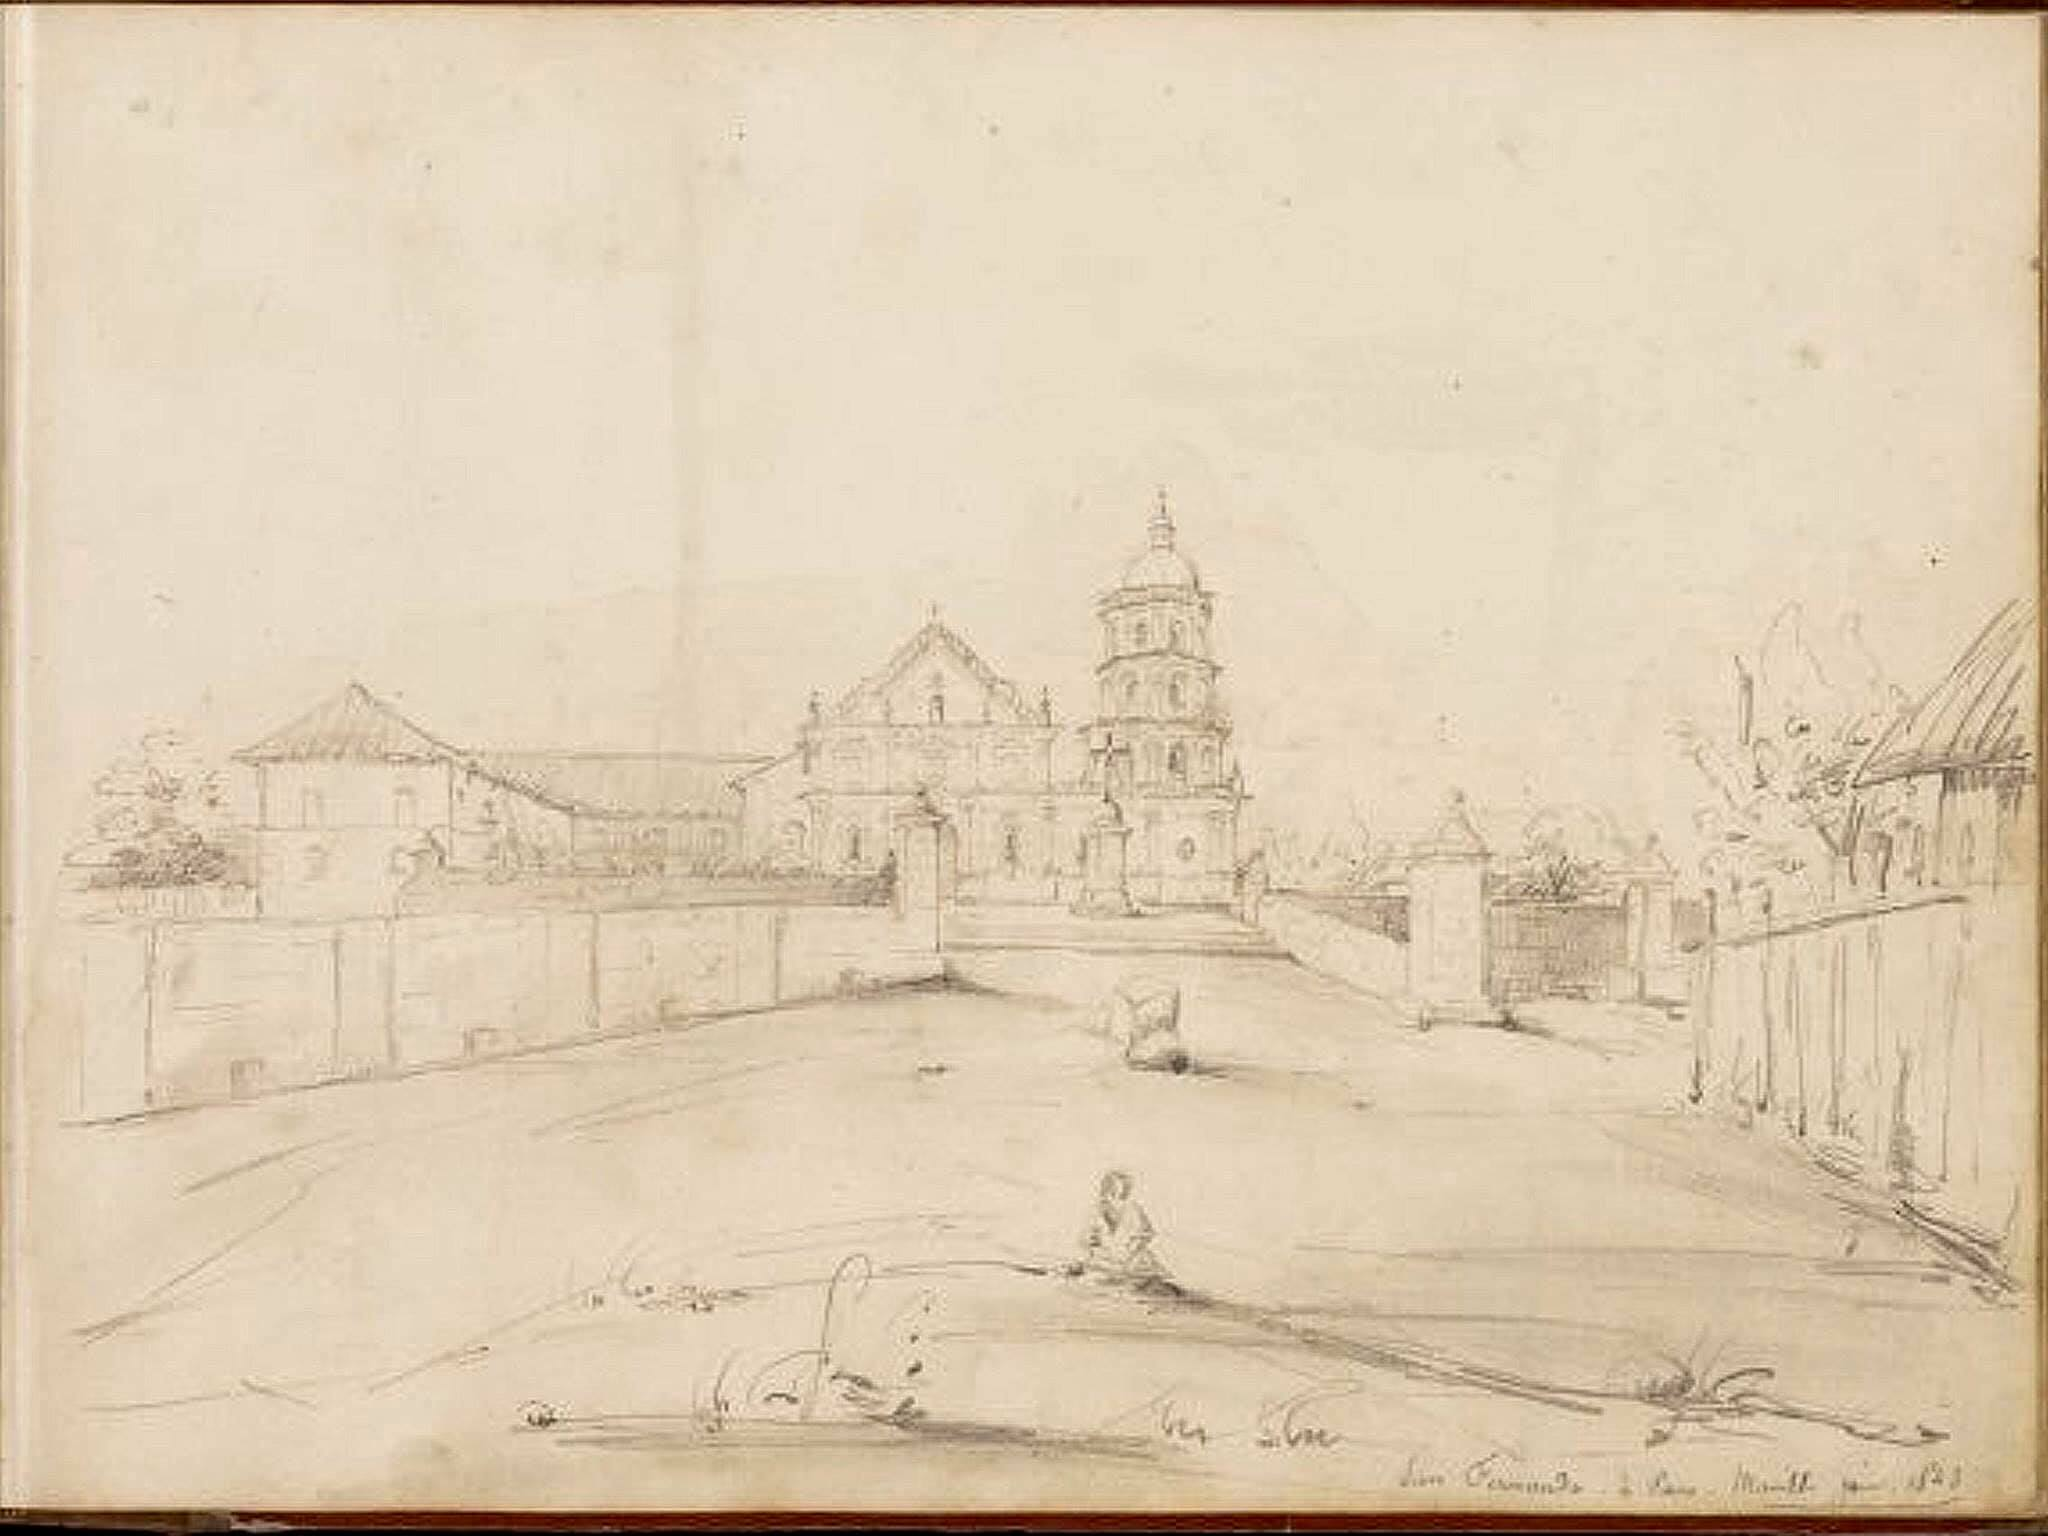 The oldest known sketch of the church of San Fernando built in 1809 Photo credits to Mr. Nicholas Torrontegui